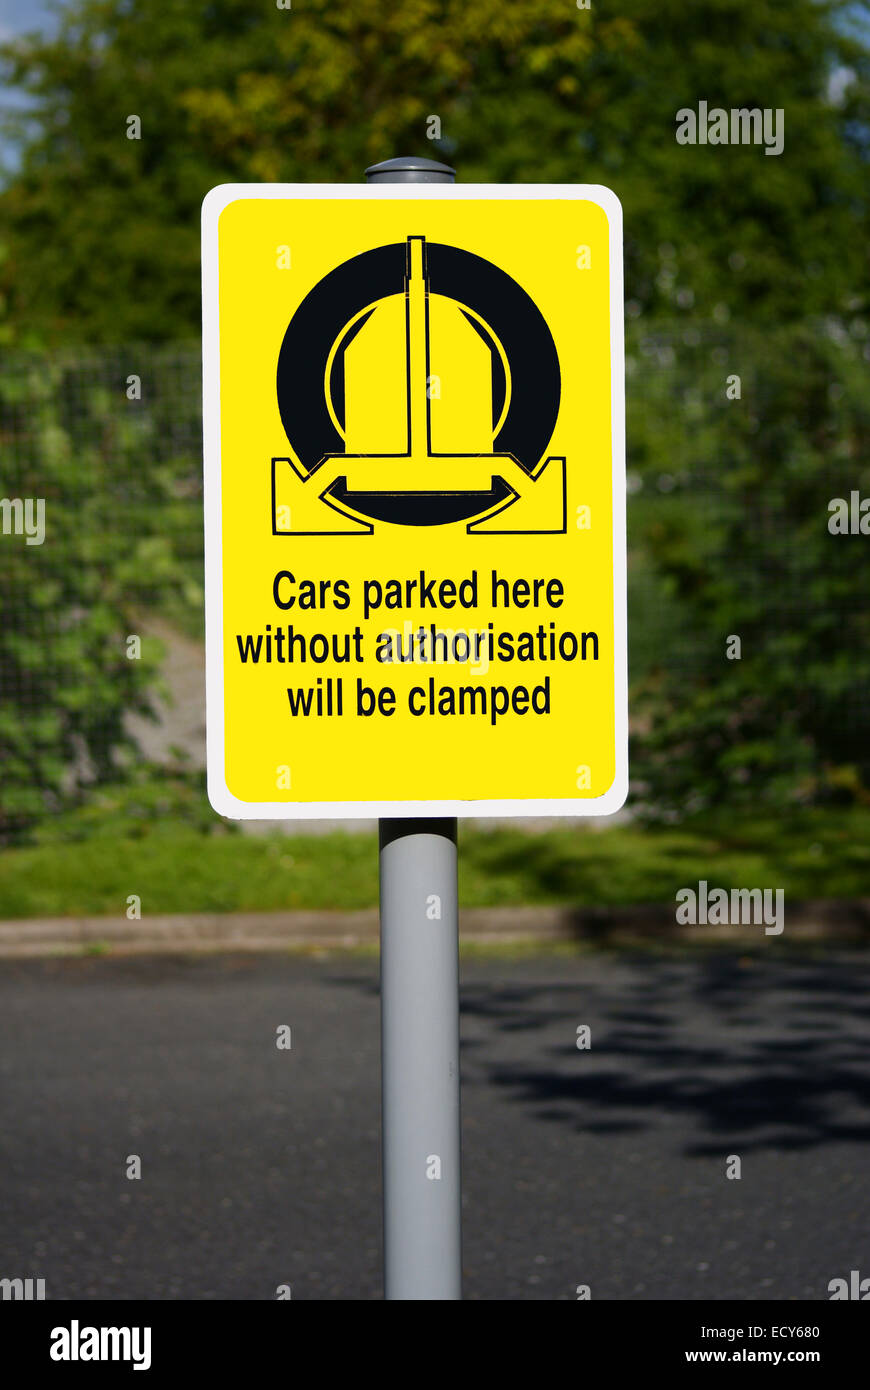 Wheel clamping sign in English - Stock Image